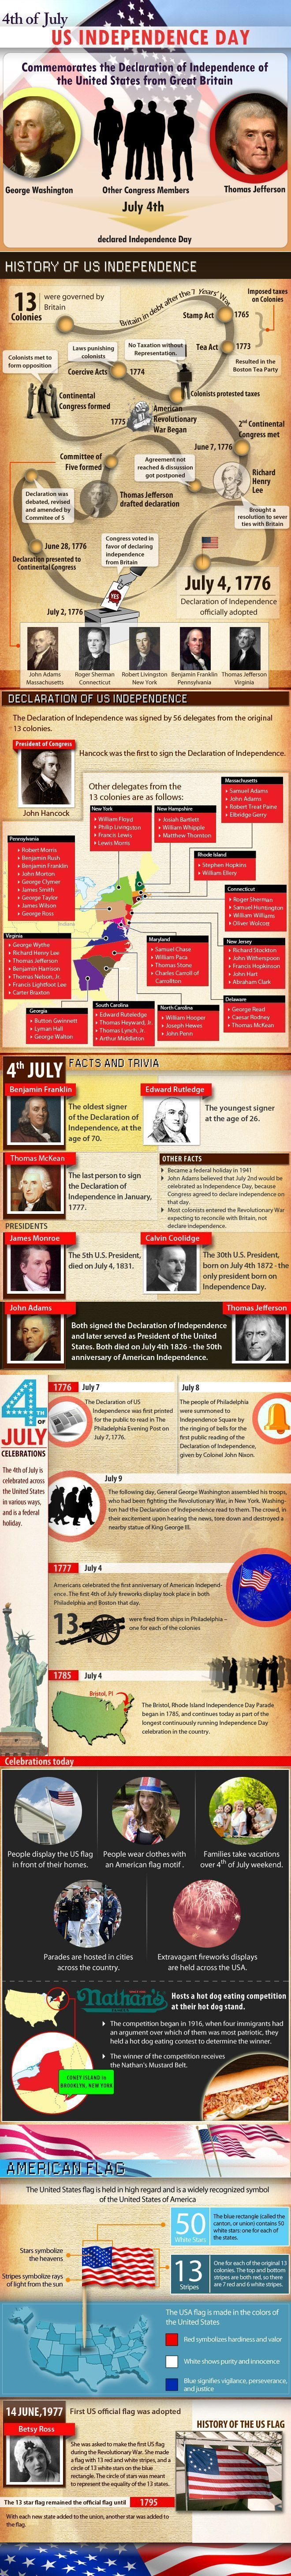 Fascinating infographic about the history of the 4th of July in the United States. Perfect for US History teachers at all grade levels.